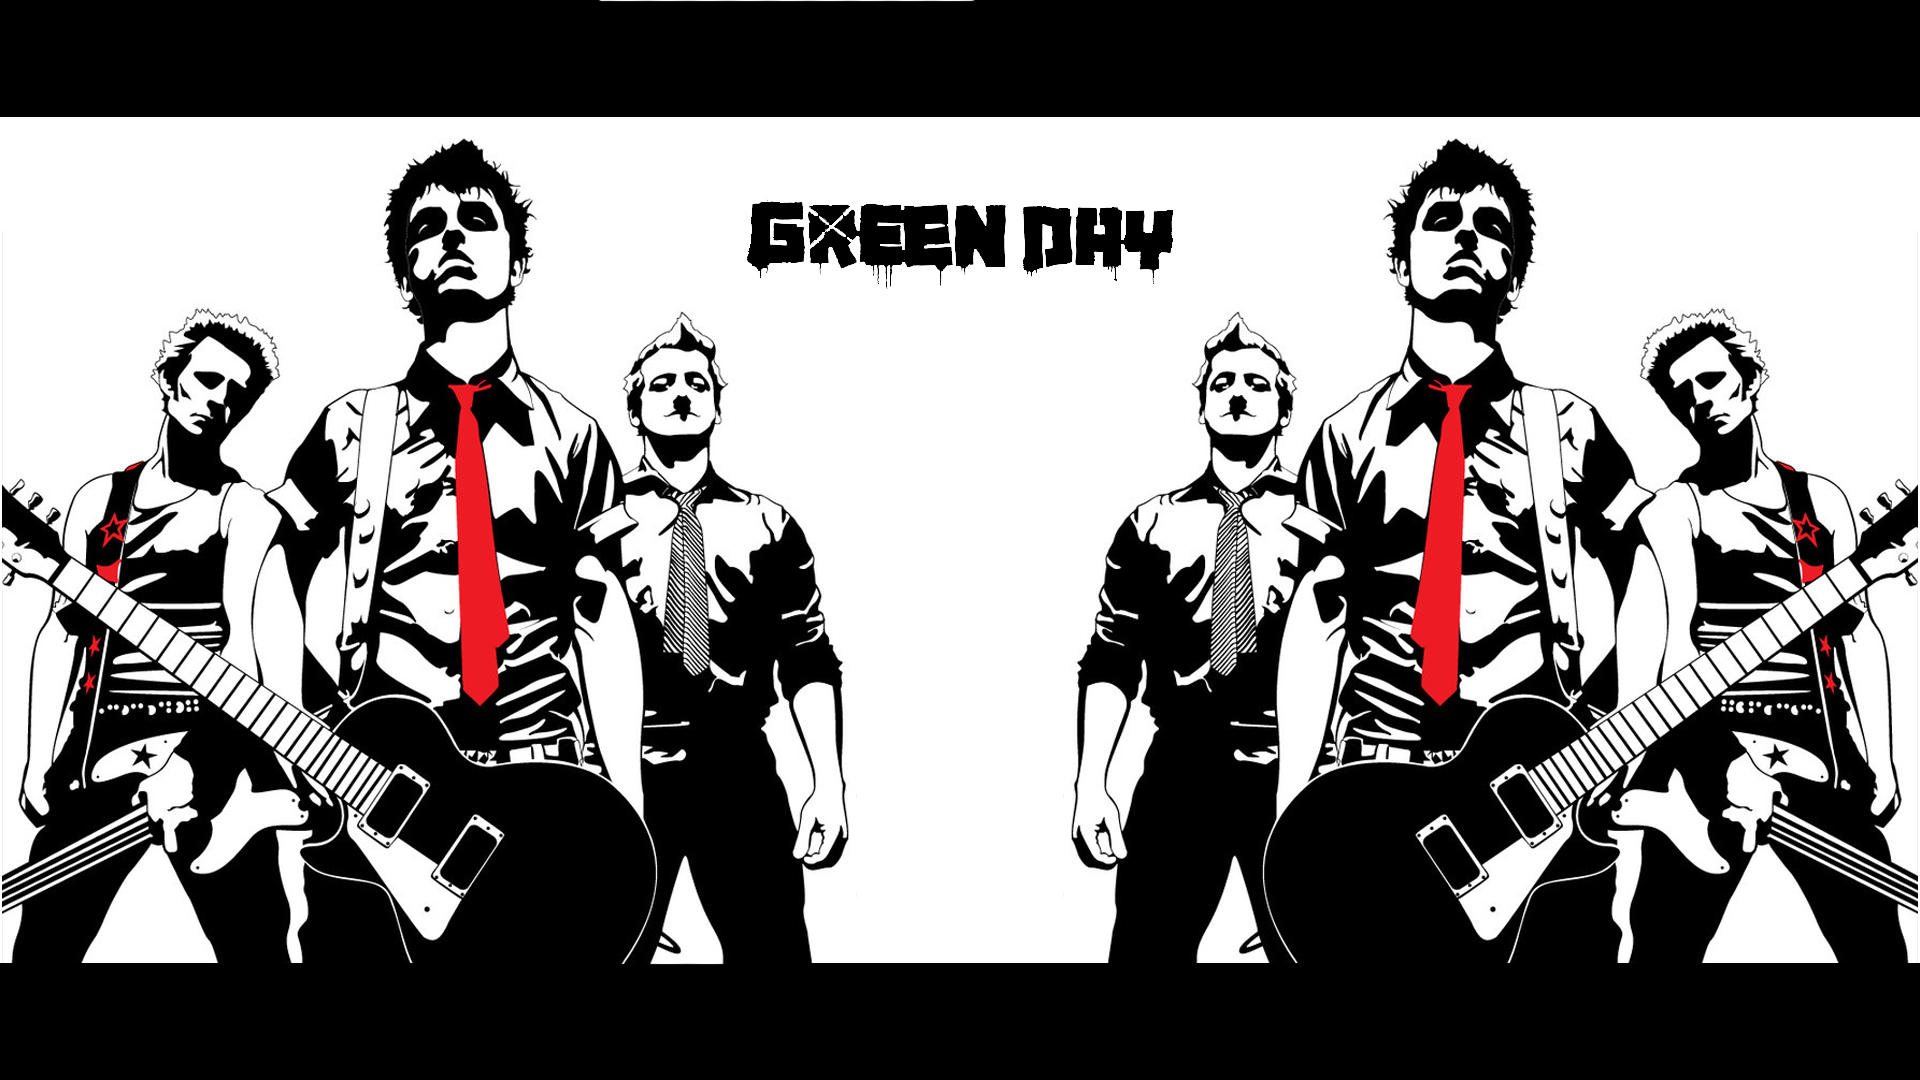 Amazing Wallpaper Logo Green Day - green_day_wallpaper_by_sisadesign-d4y9v7r  You Should Have_737044.jpg